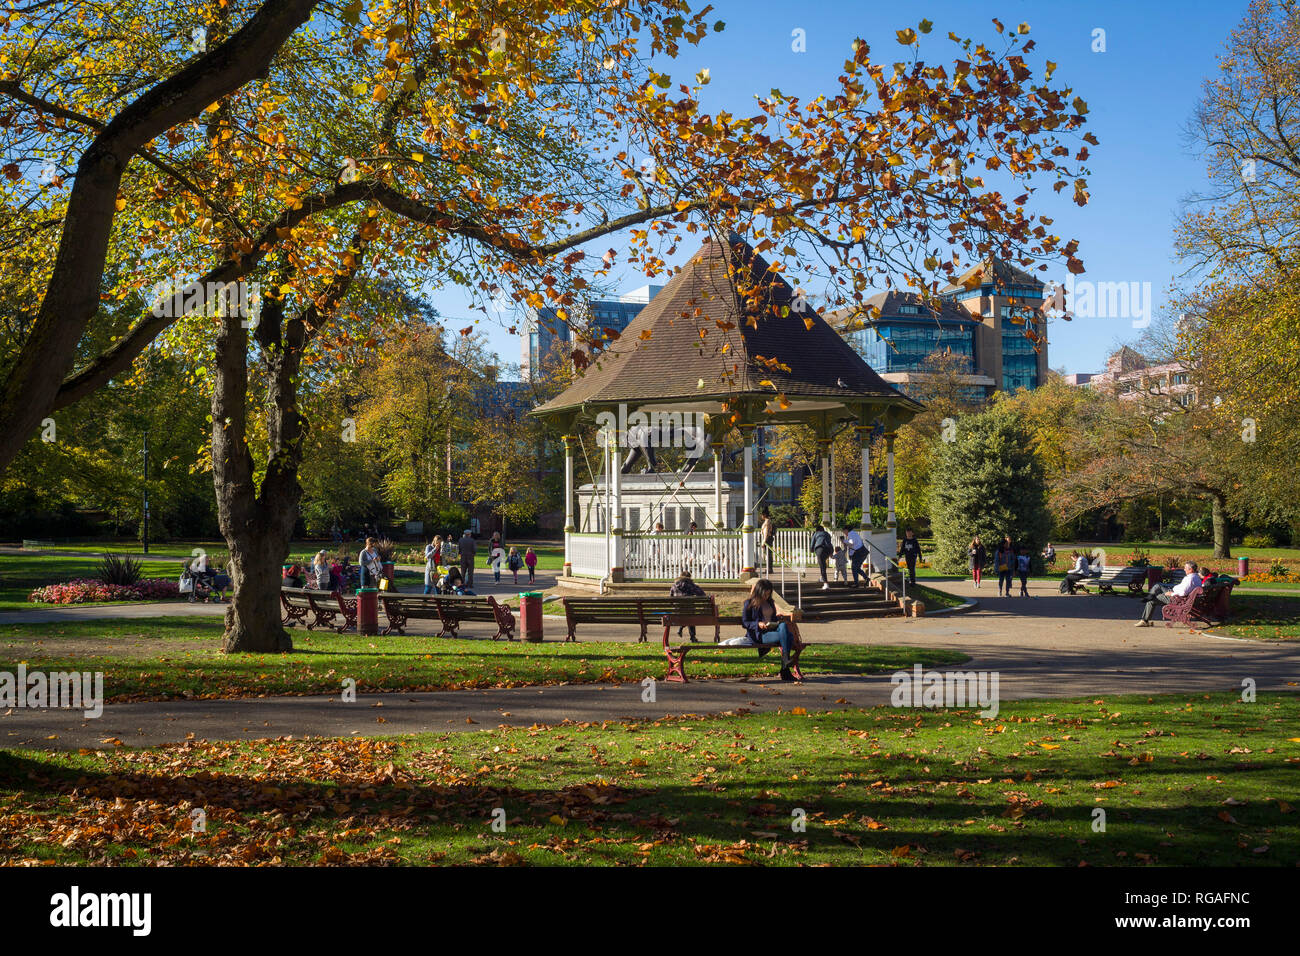 People enjoy some late Autumn sunshine by the bandstand in Forbury Gardens, Reading, Berkshire - Stock Image